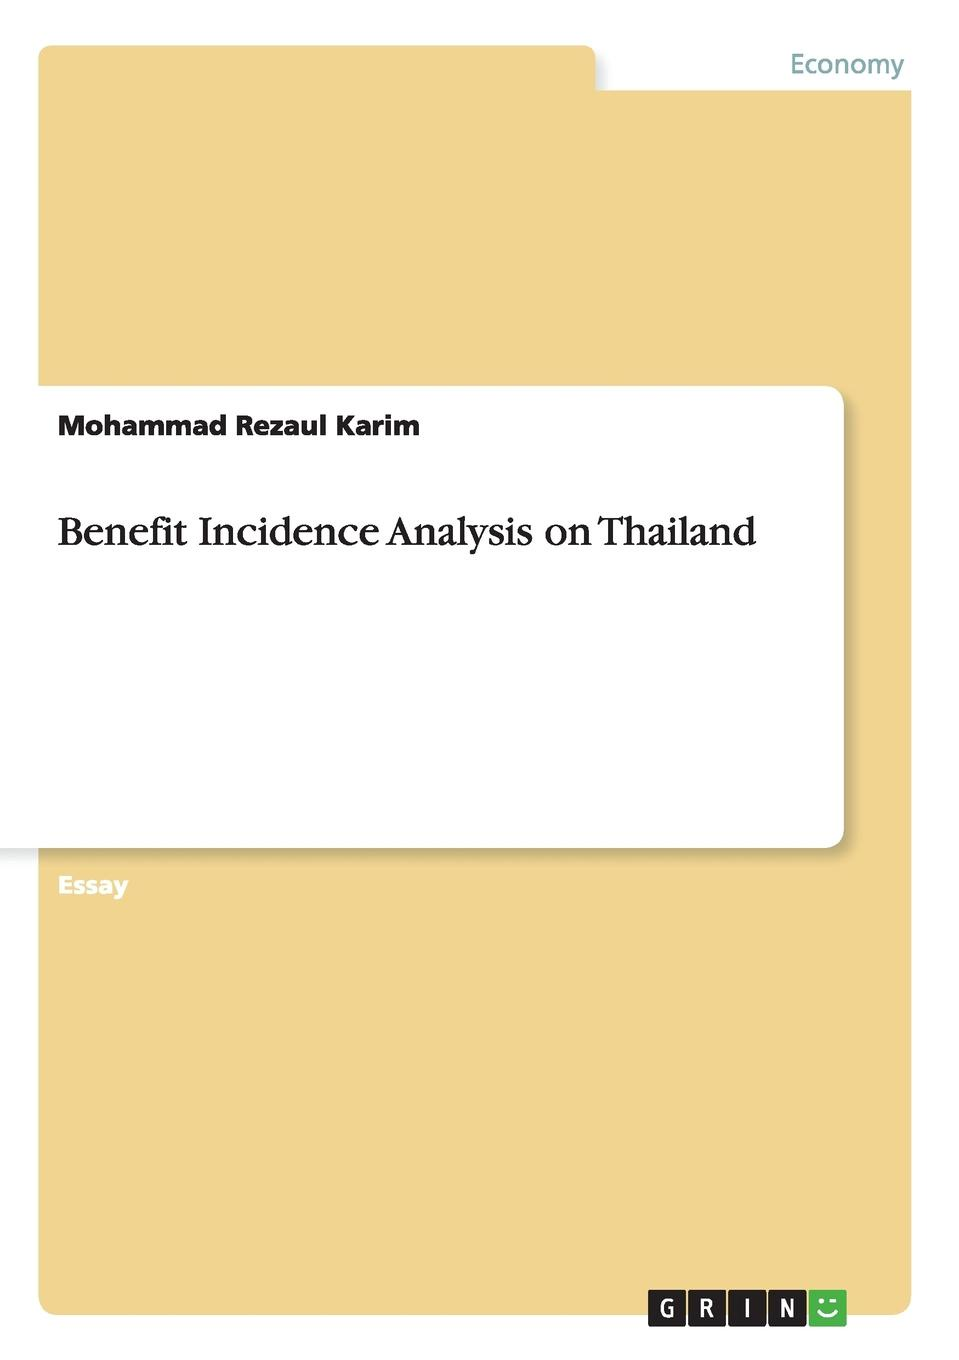 Mohammad Rezaul Karim Benefit Incidence Analysis on Thailand david weimer cost benefit analysis and public policy